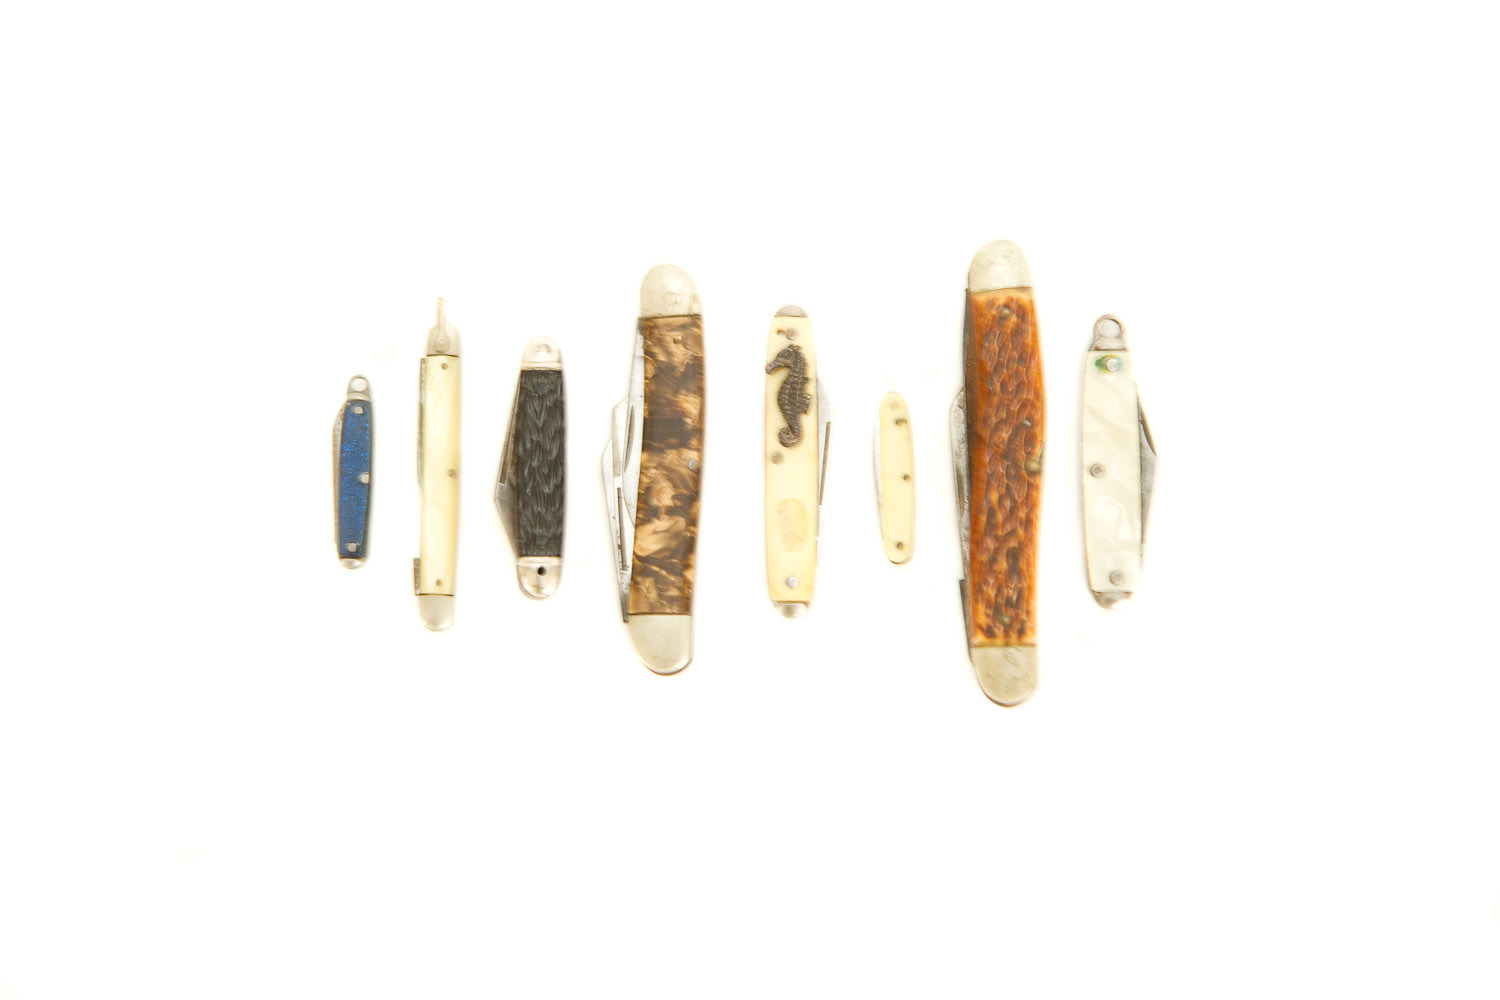 (PS-128) ANTIQUE POCKETKNIFE COLLECTION